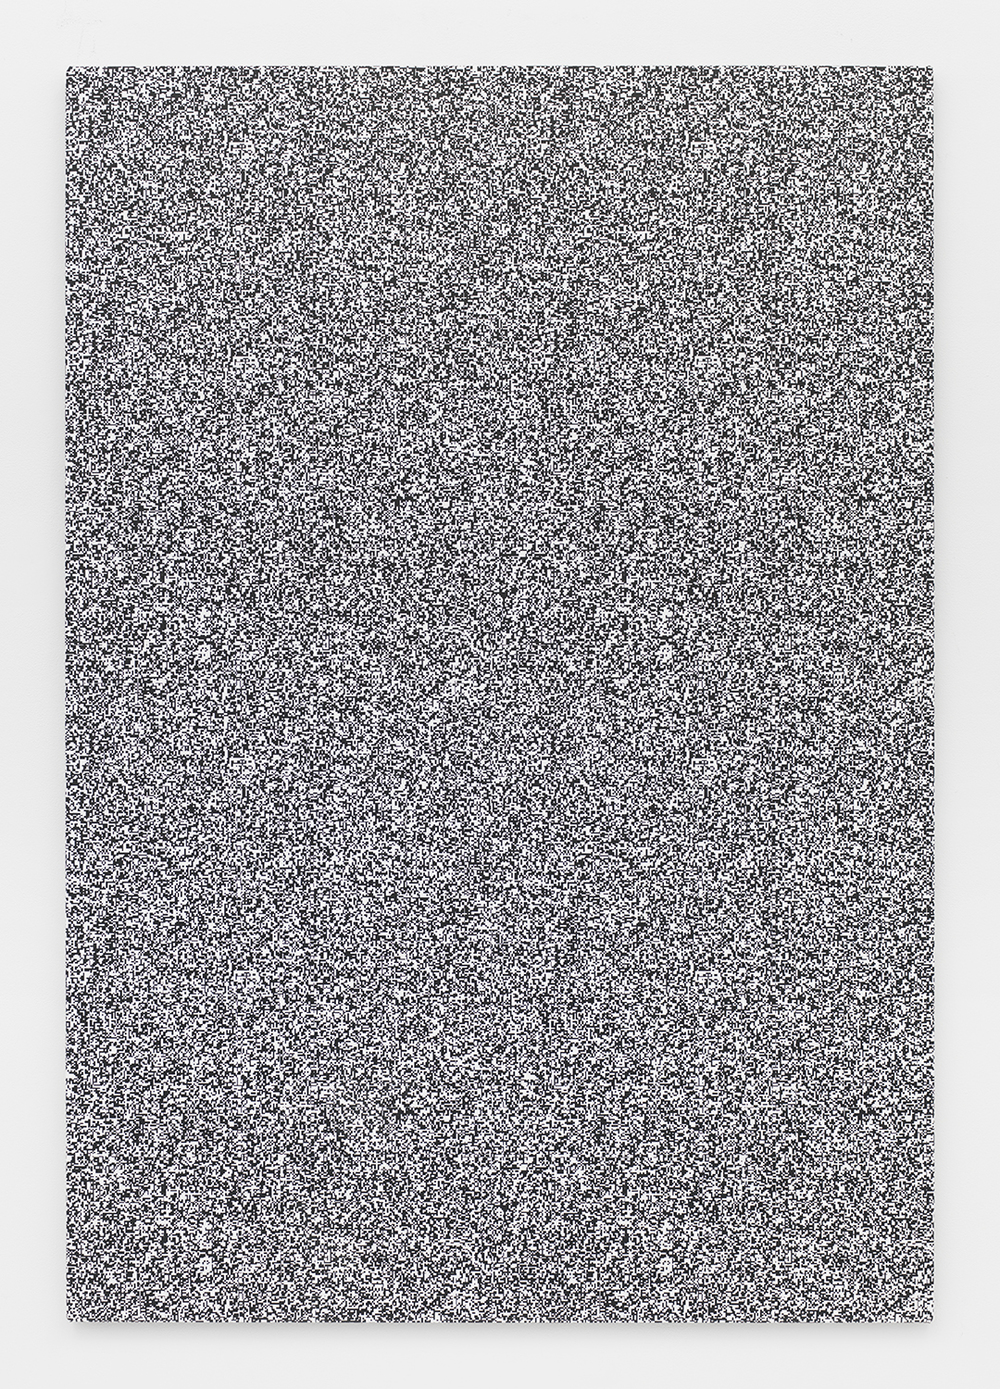 Haley Mellin  Untitled 097 , 2014 Ink, oil and gesso on canvas 64 x 44 inches